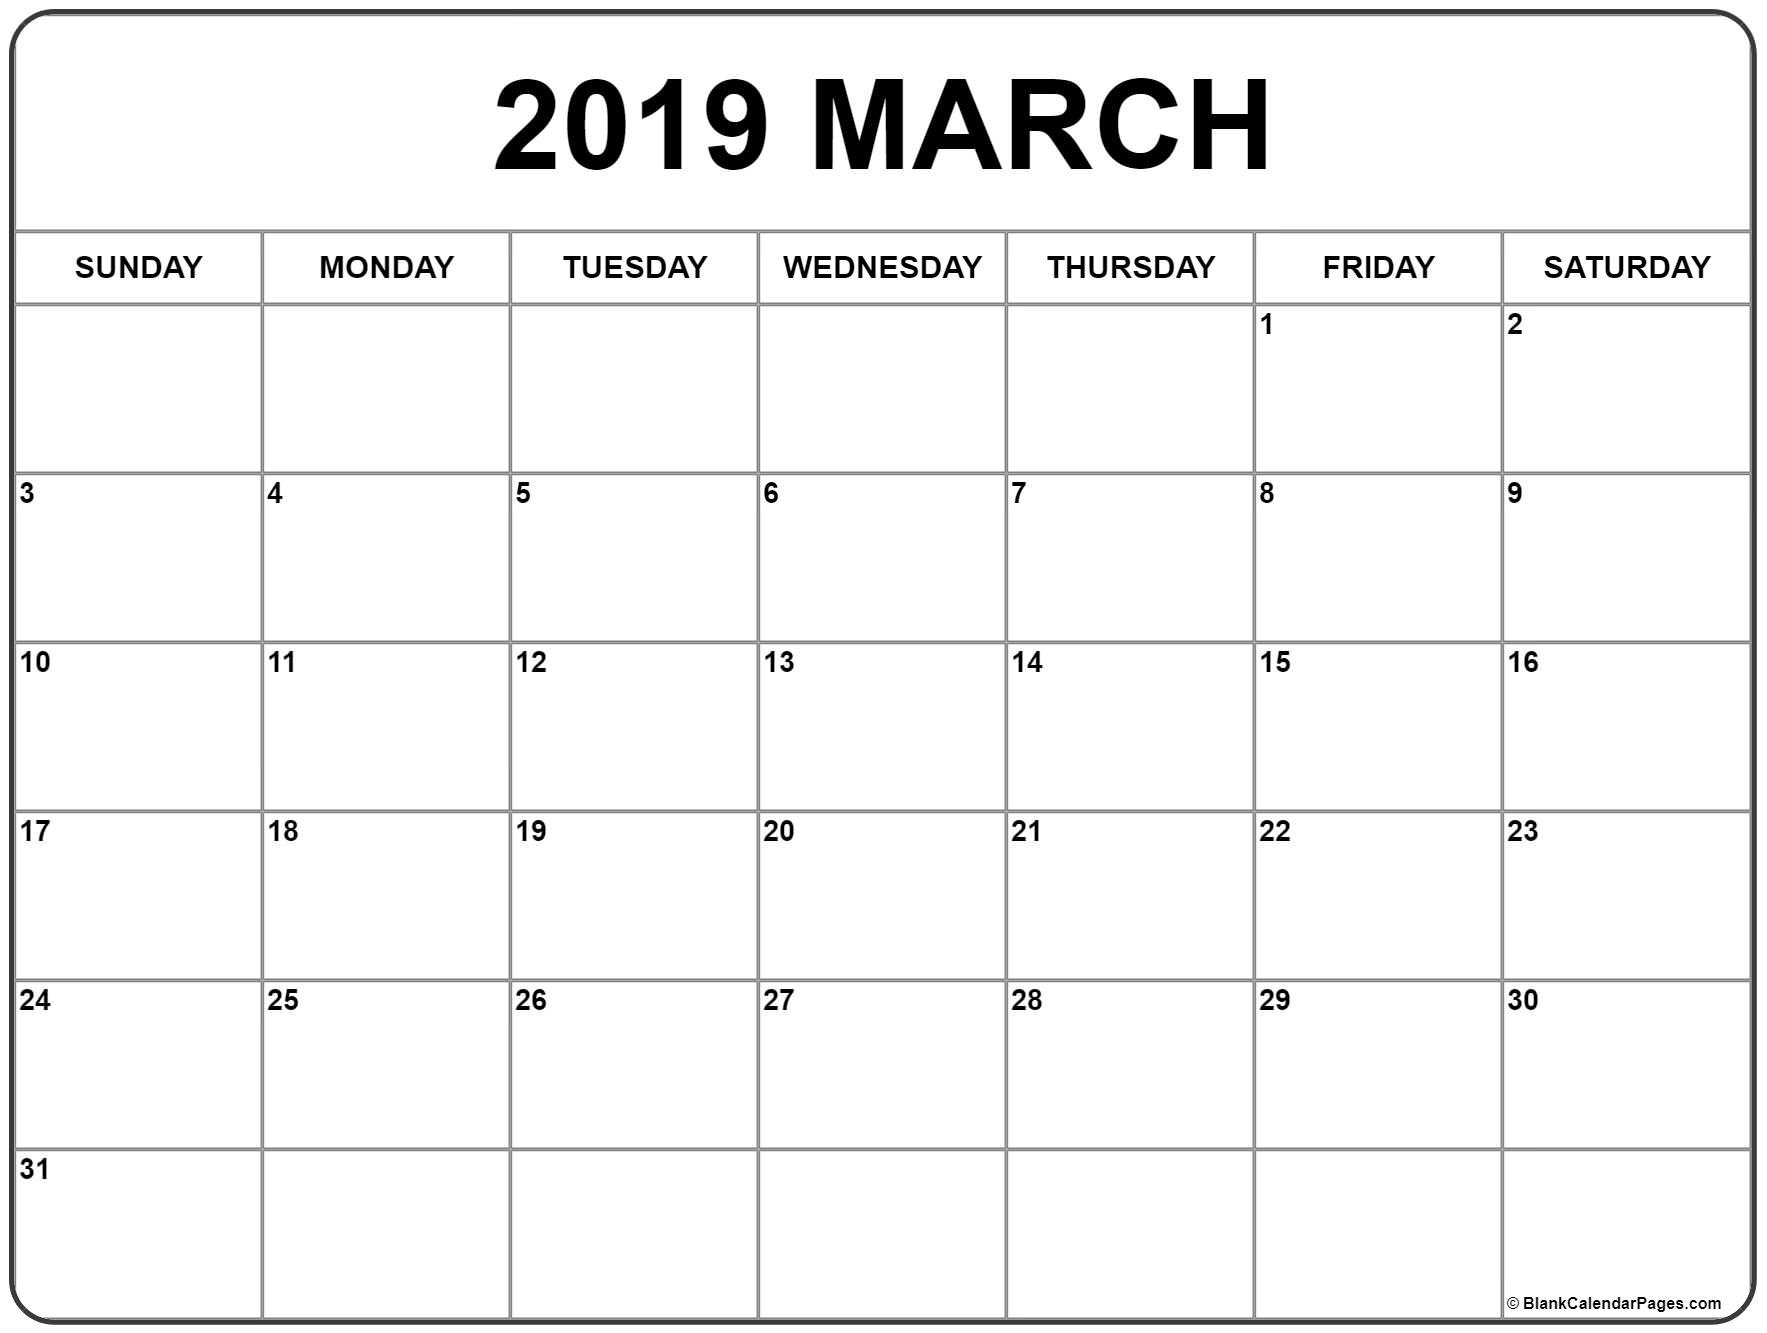 March 2019 Calendar | 56+ Templates Of 2019 Printable Calendars Calendar 2019 Print Free